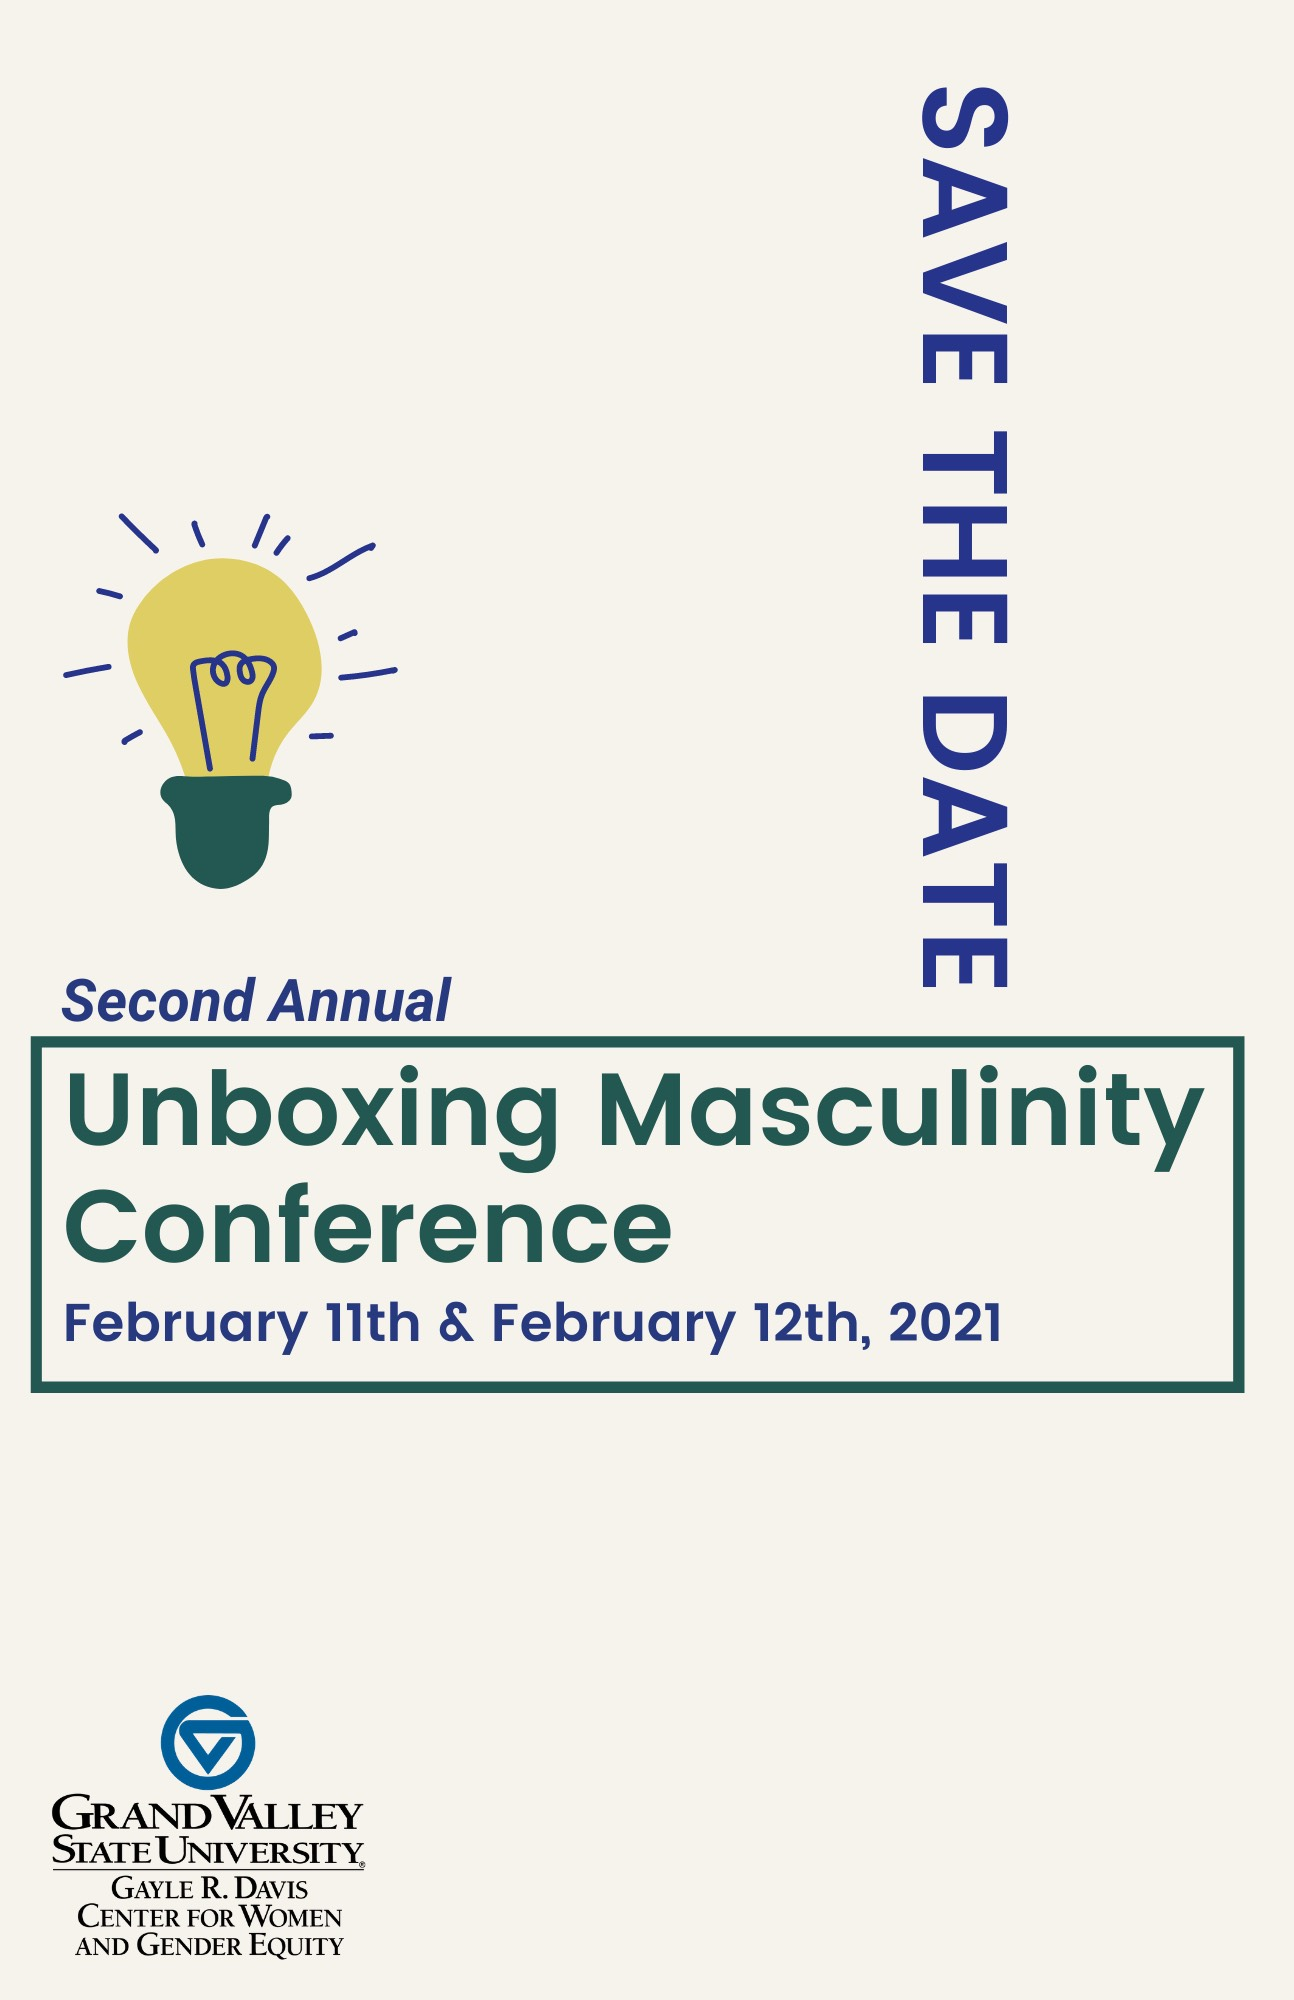 Unboxing masculinity conference save the date! February 11th & 12th, 2021. Registration to be posted soon.